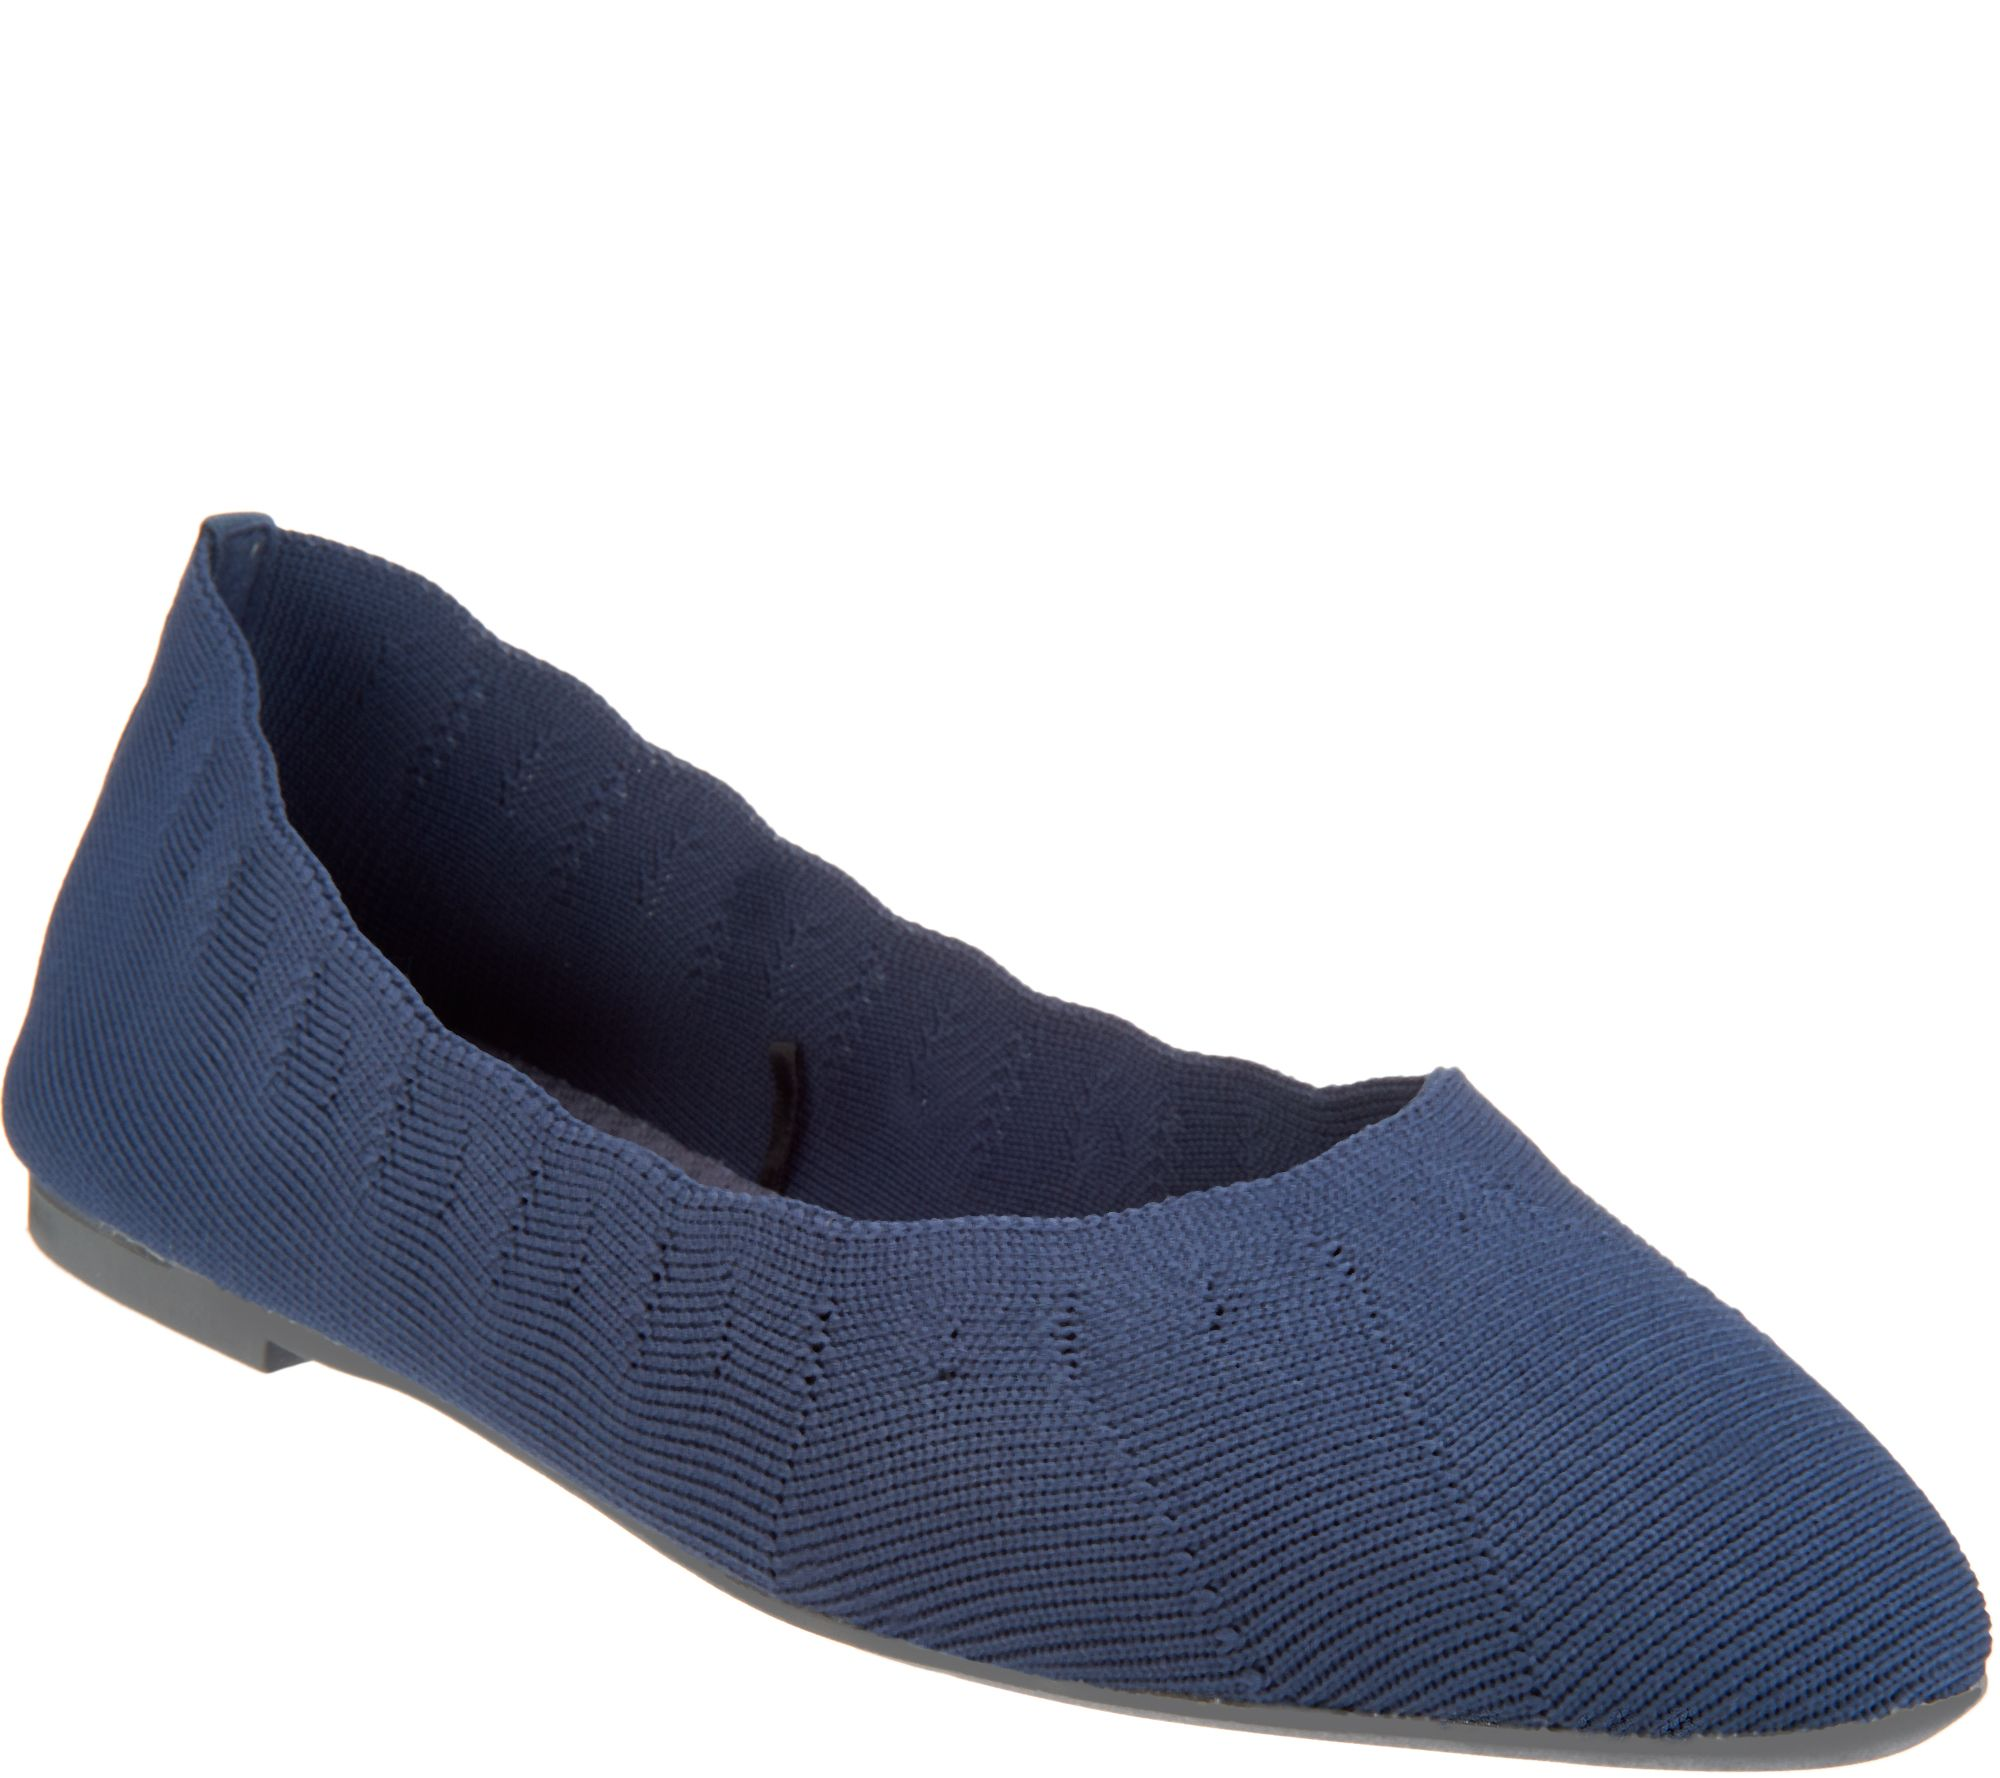 1f6581cd Skechers Engineered Knit Skimmer Flats - Bewitch - Page 1 — QVC.com